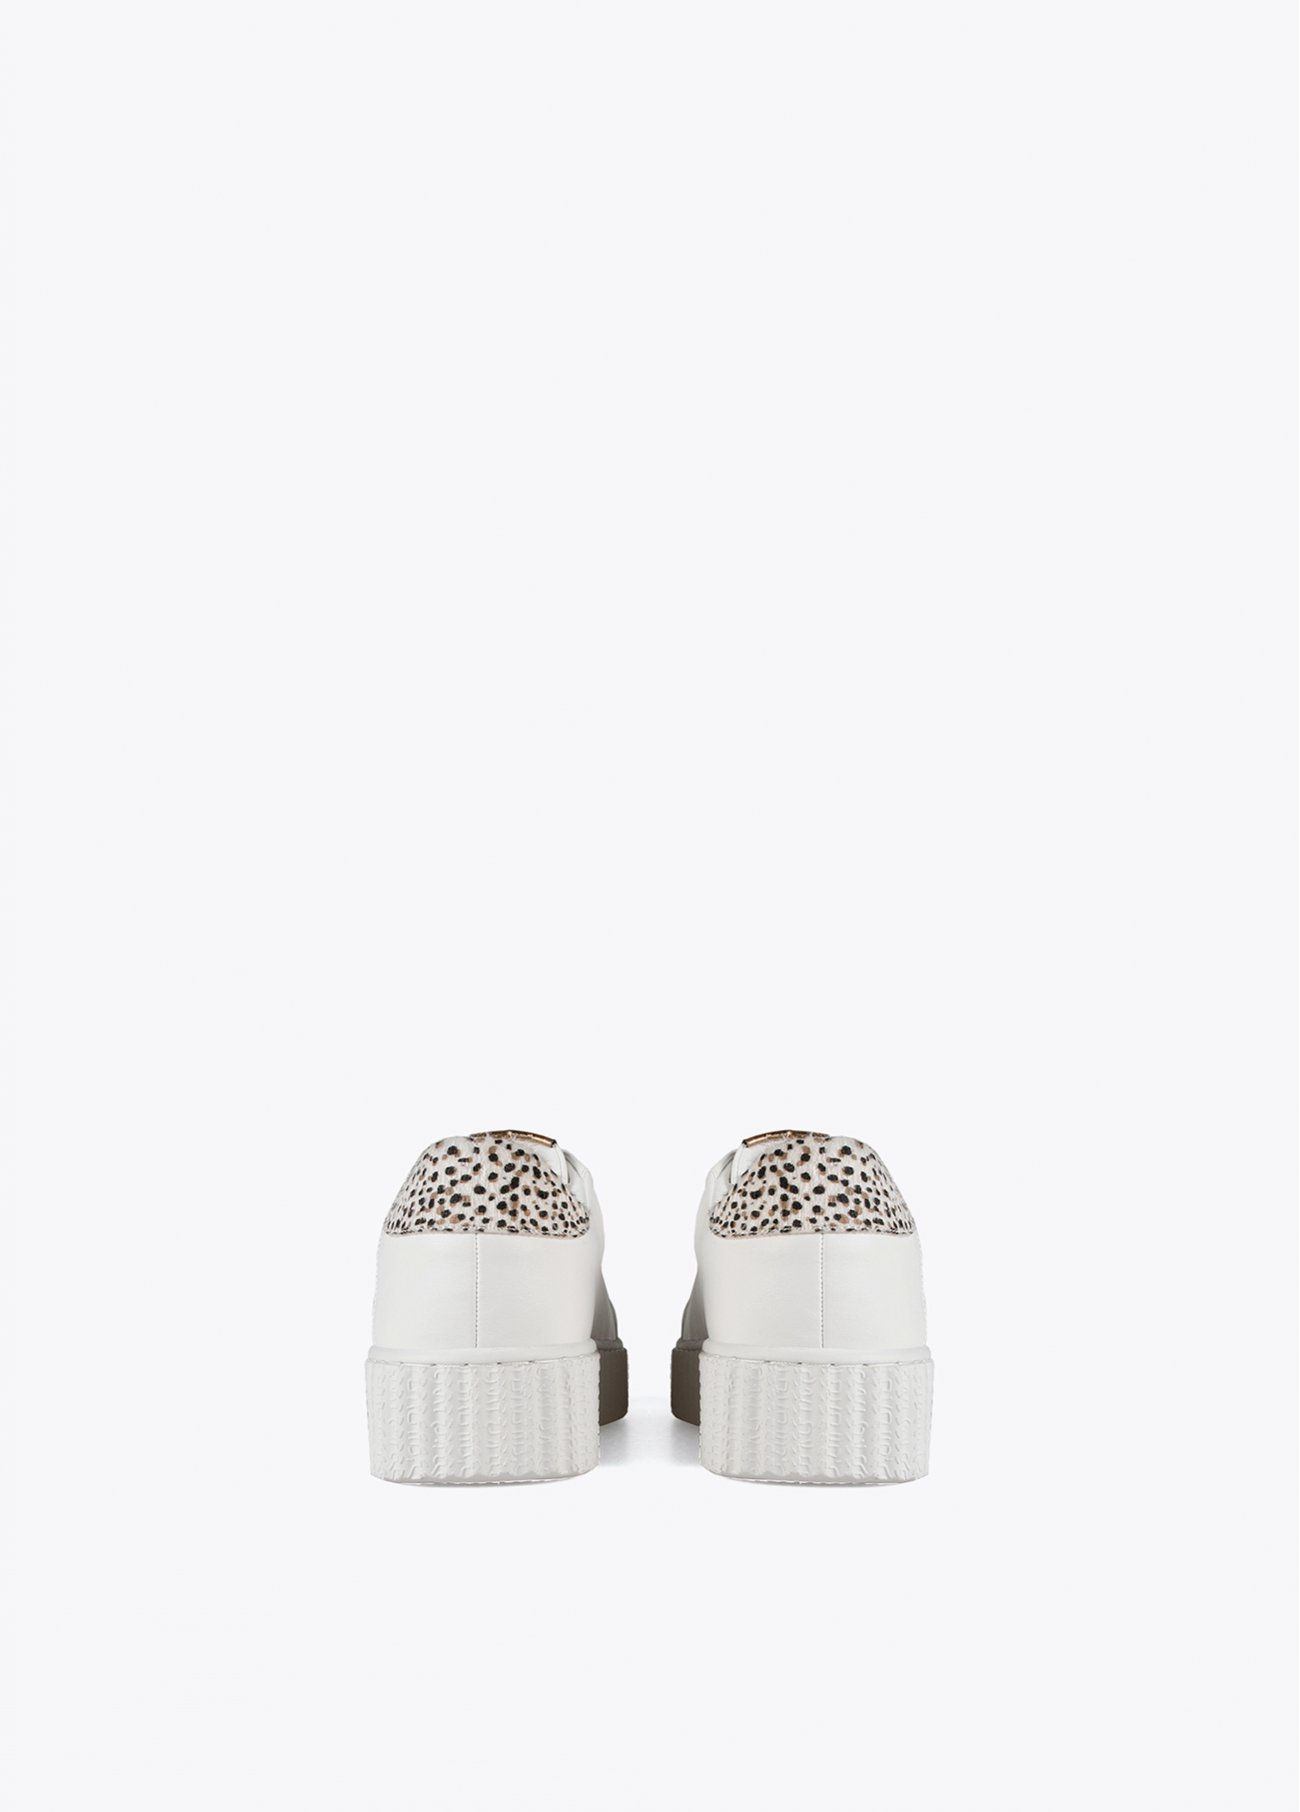 White sneaker with leopard patch